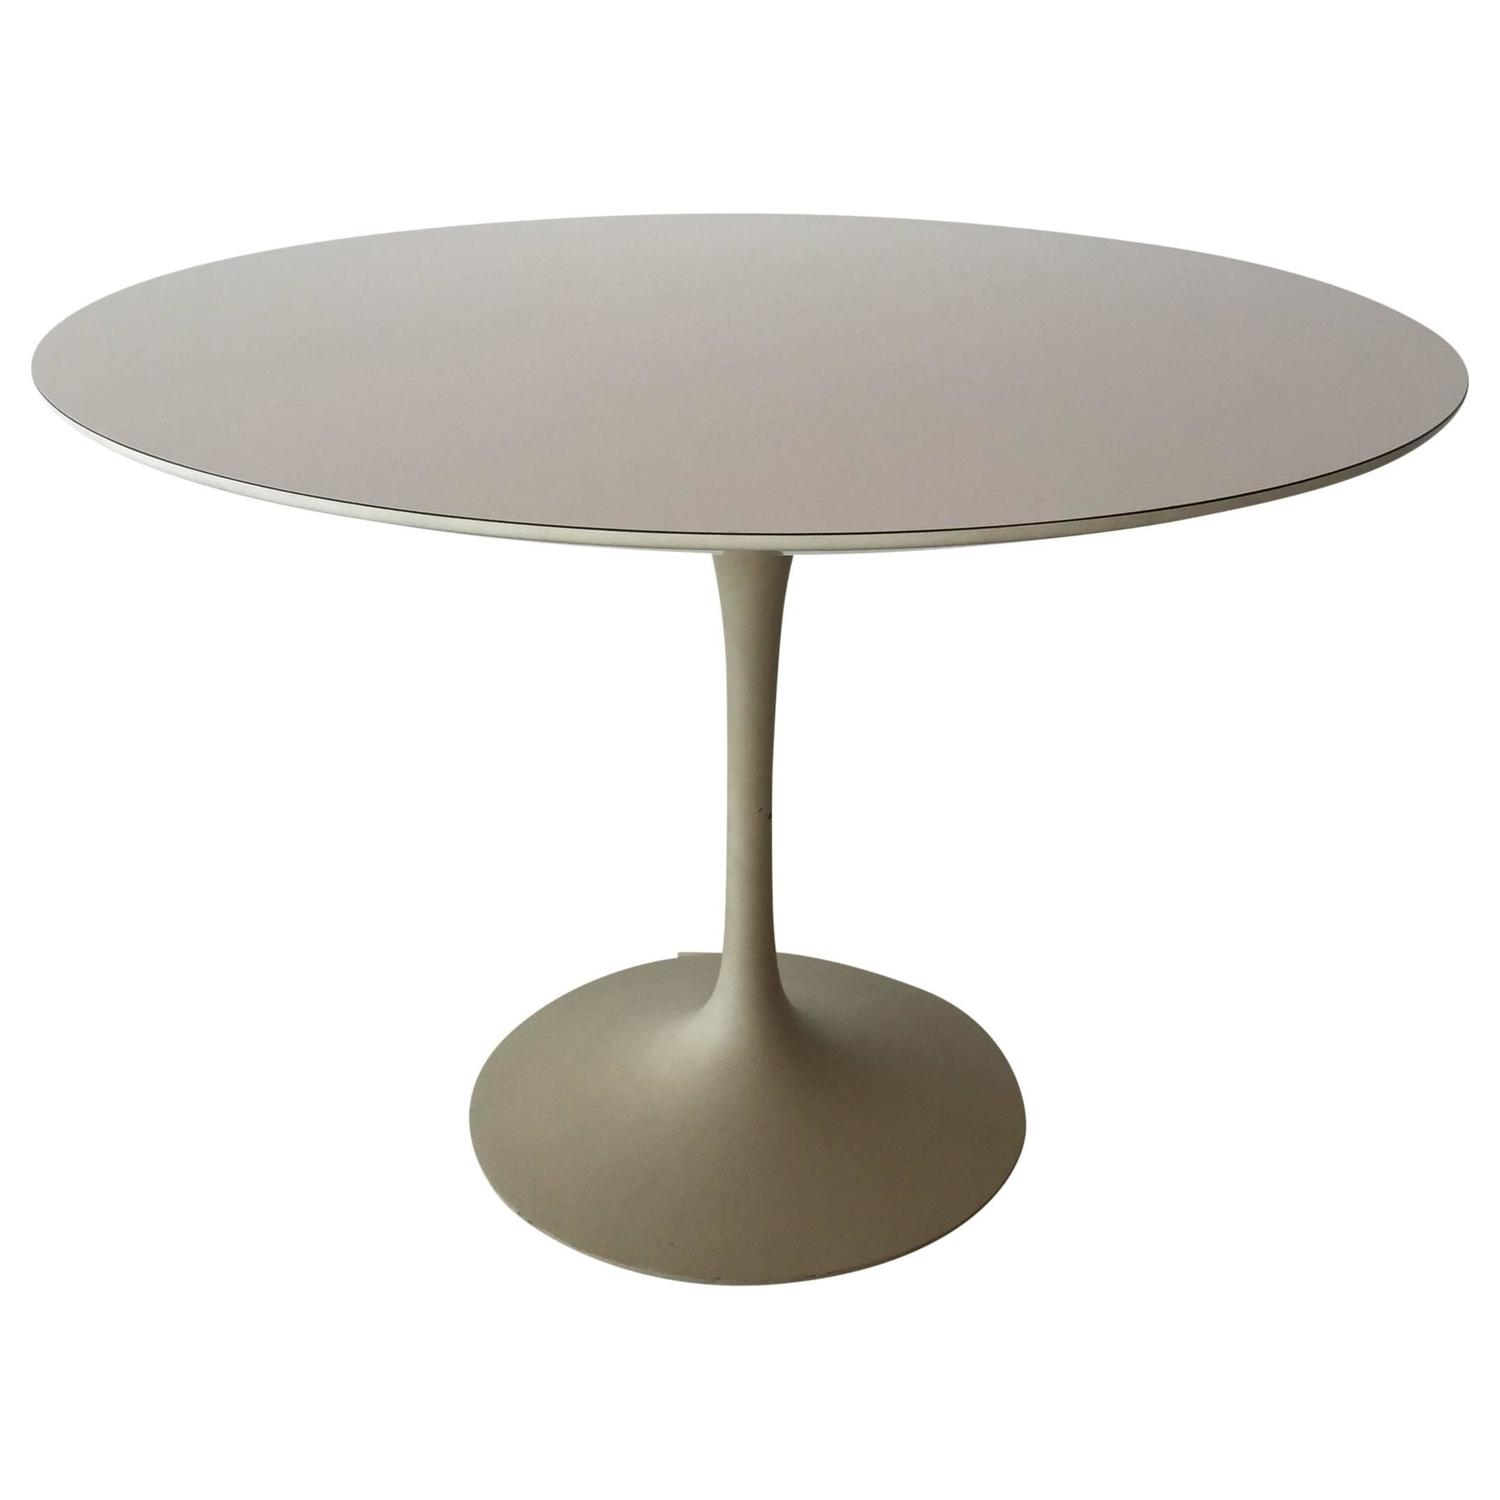 Eero Saarinen For Knoll Associates 39 Tulip 39 Dining Table